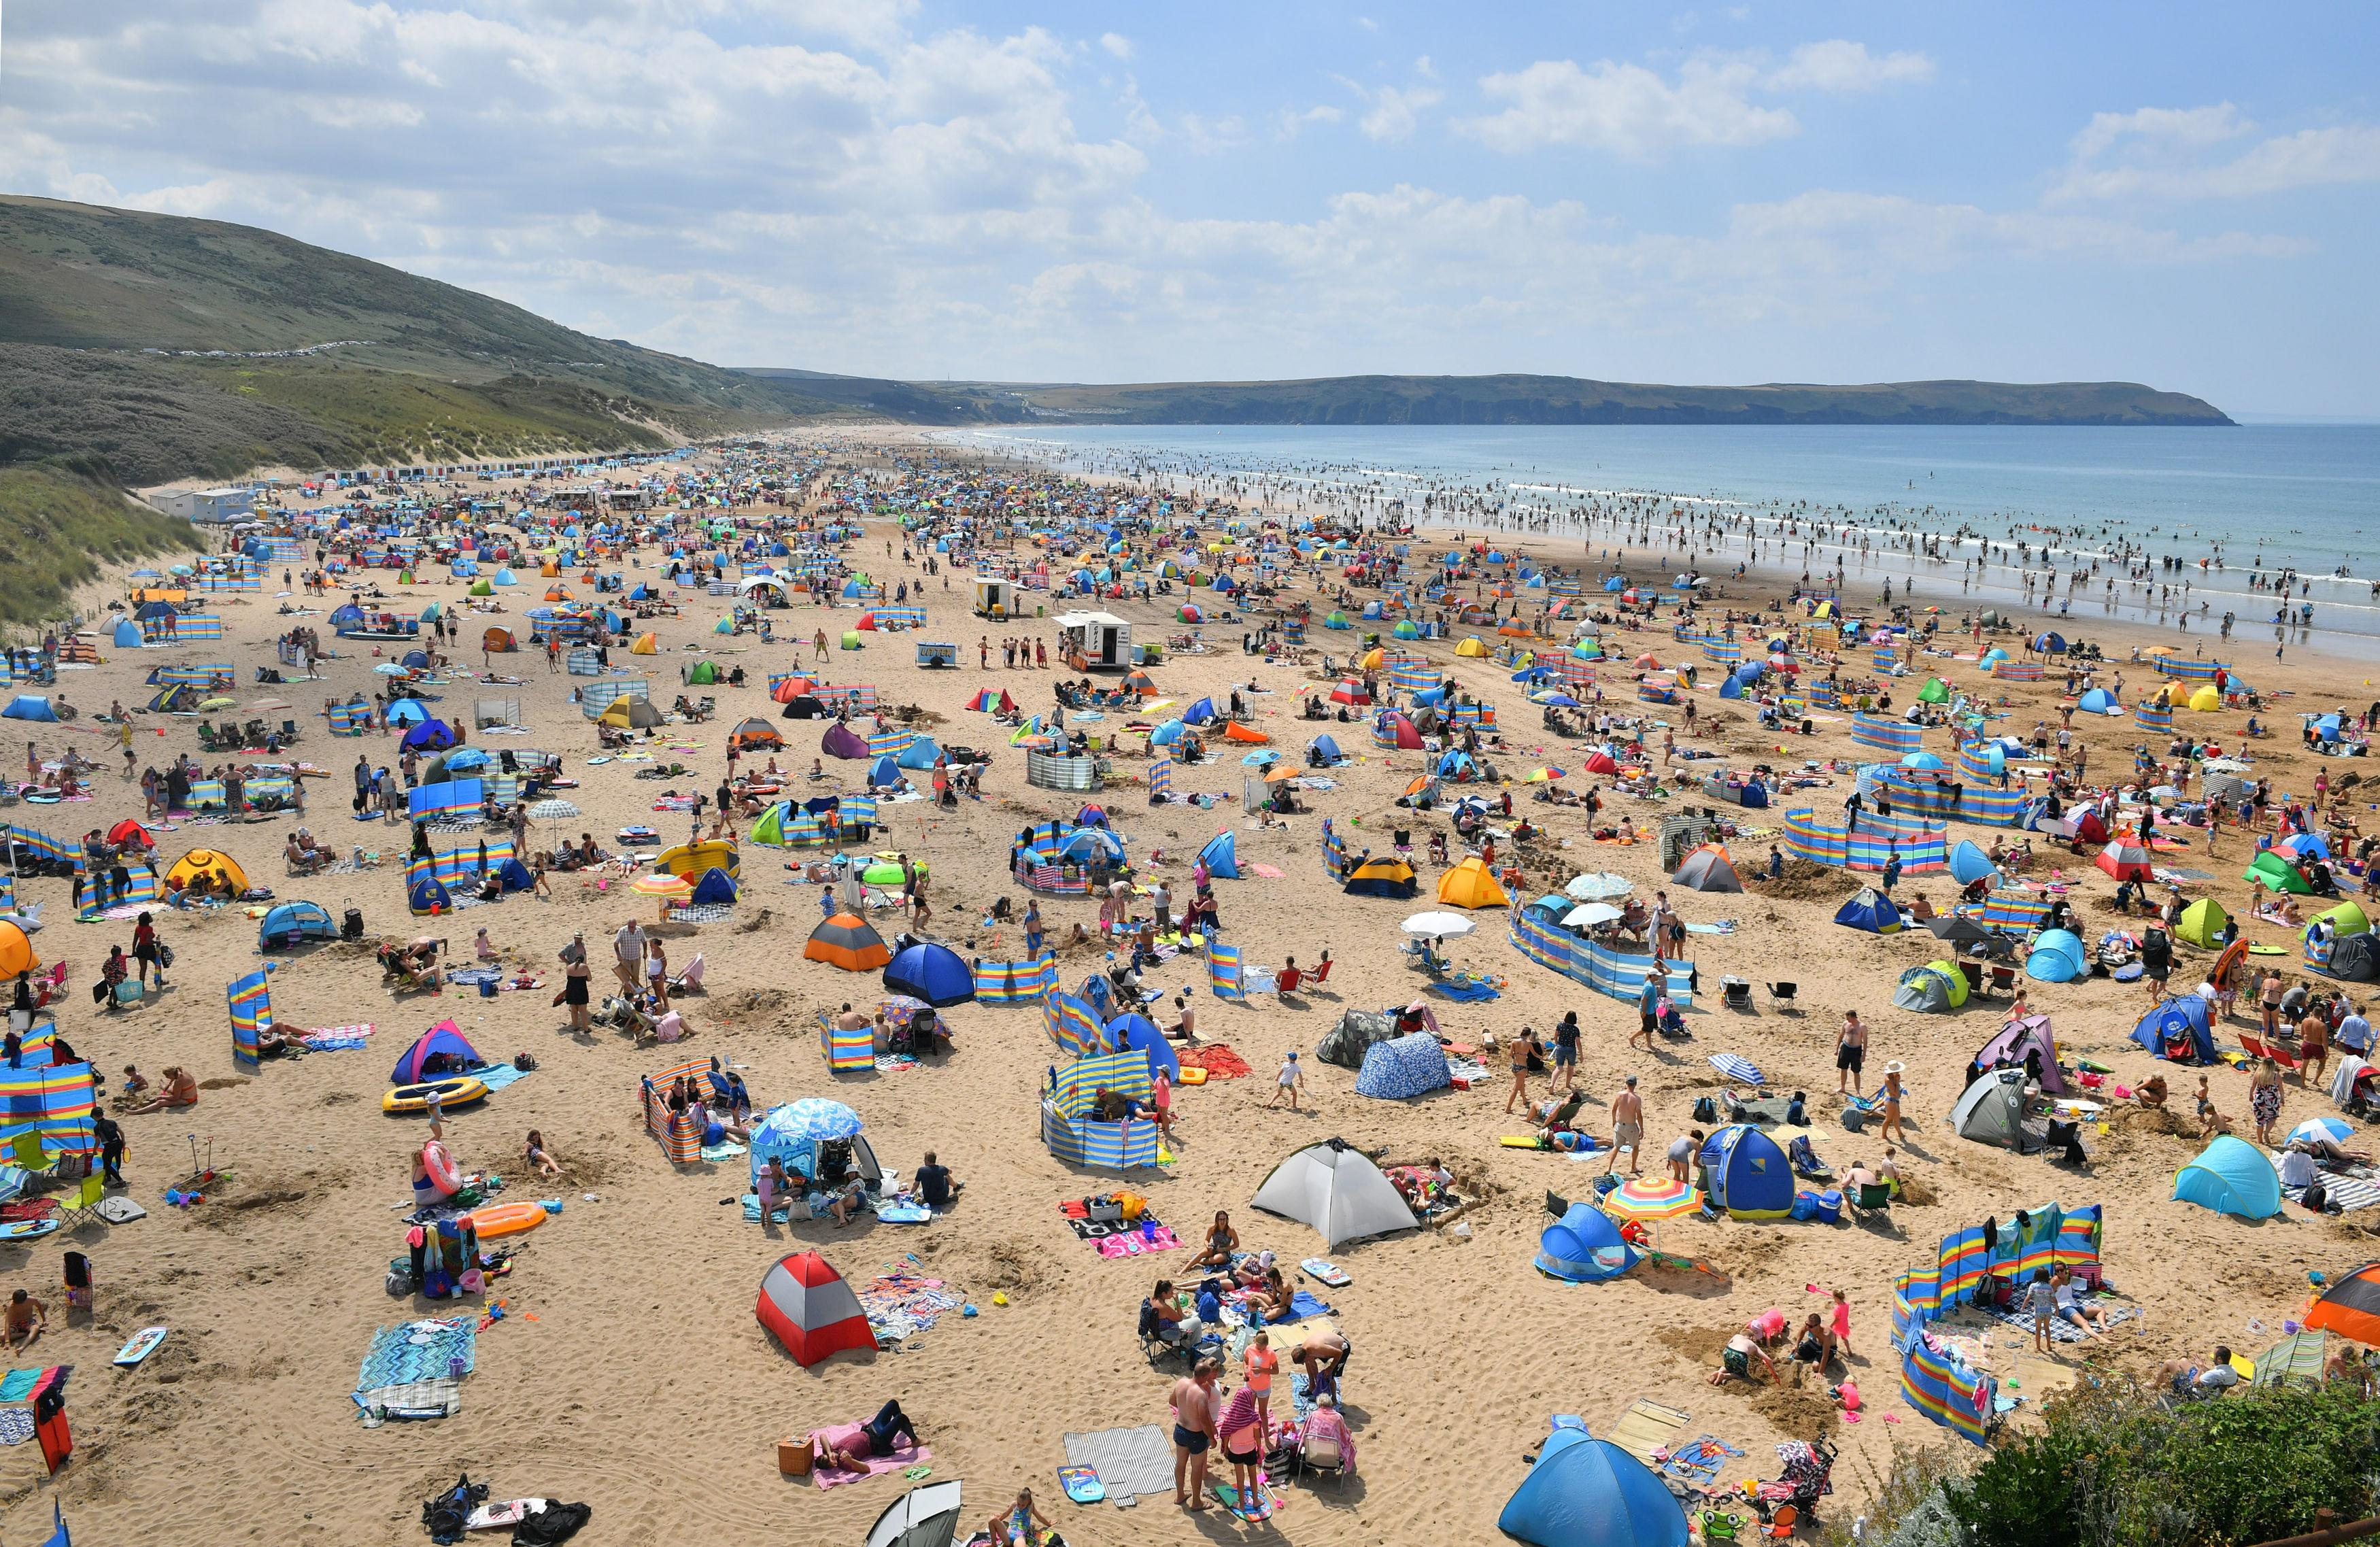 South-west England is 'full to capacity' following influx of tourists during heatwave, say police